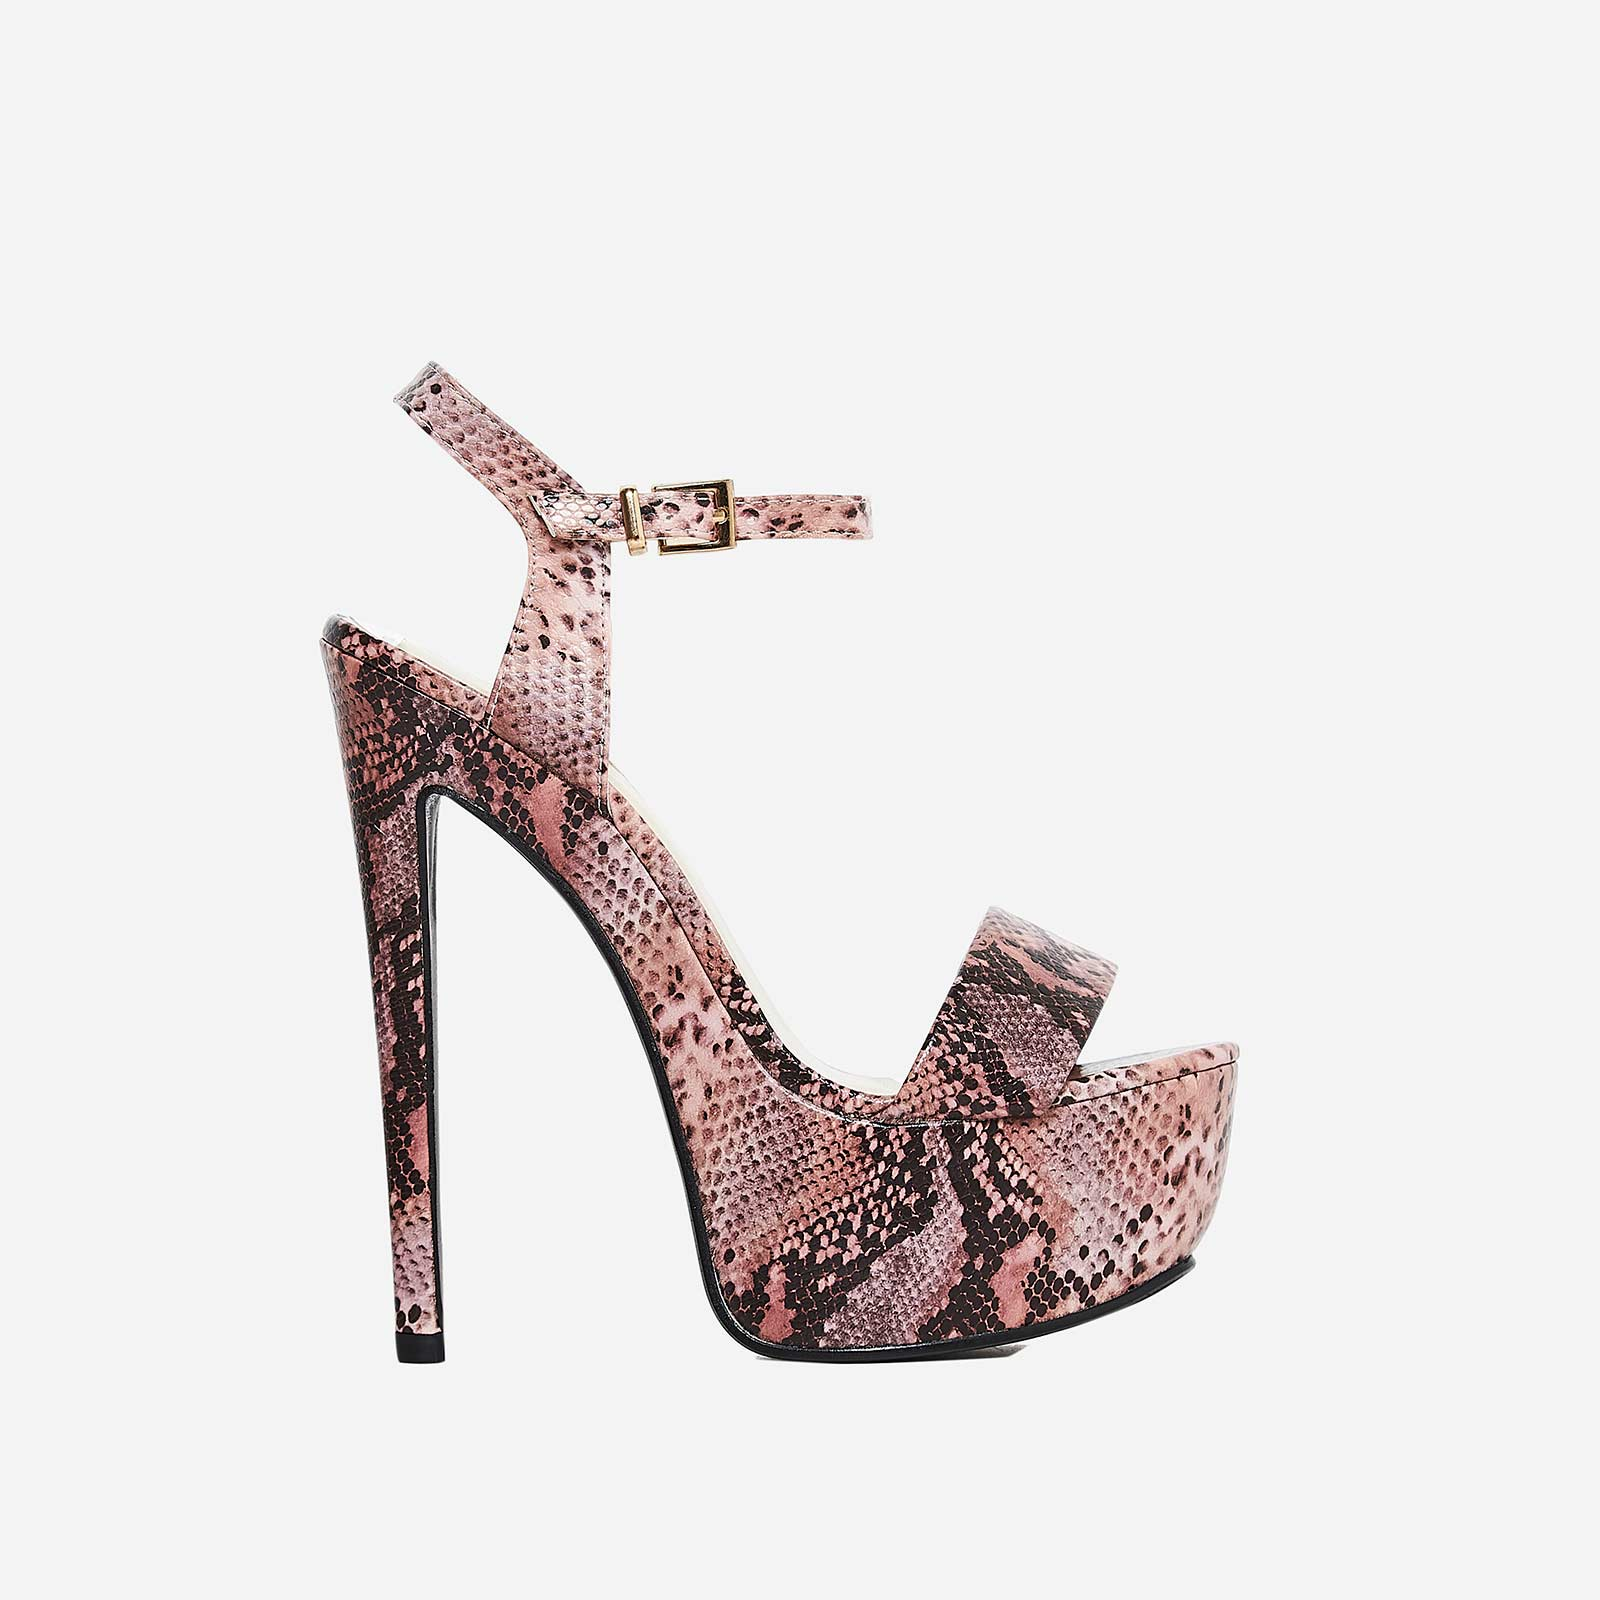 Racer Platform Heel In Pink Snake Print Faux Leather